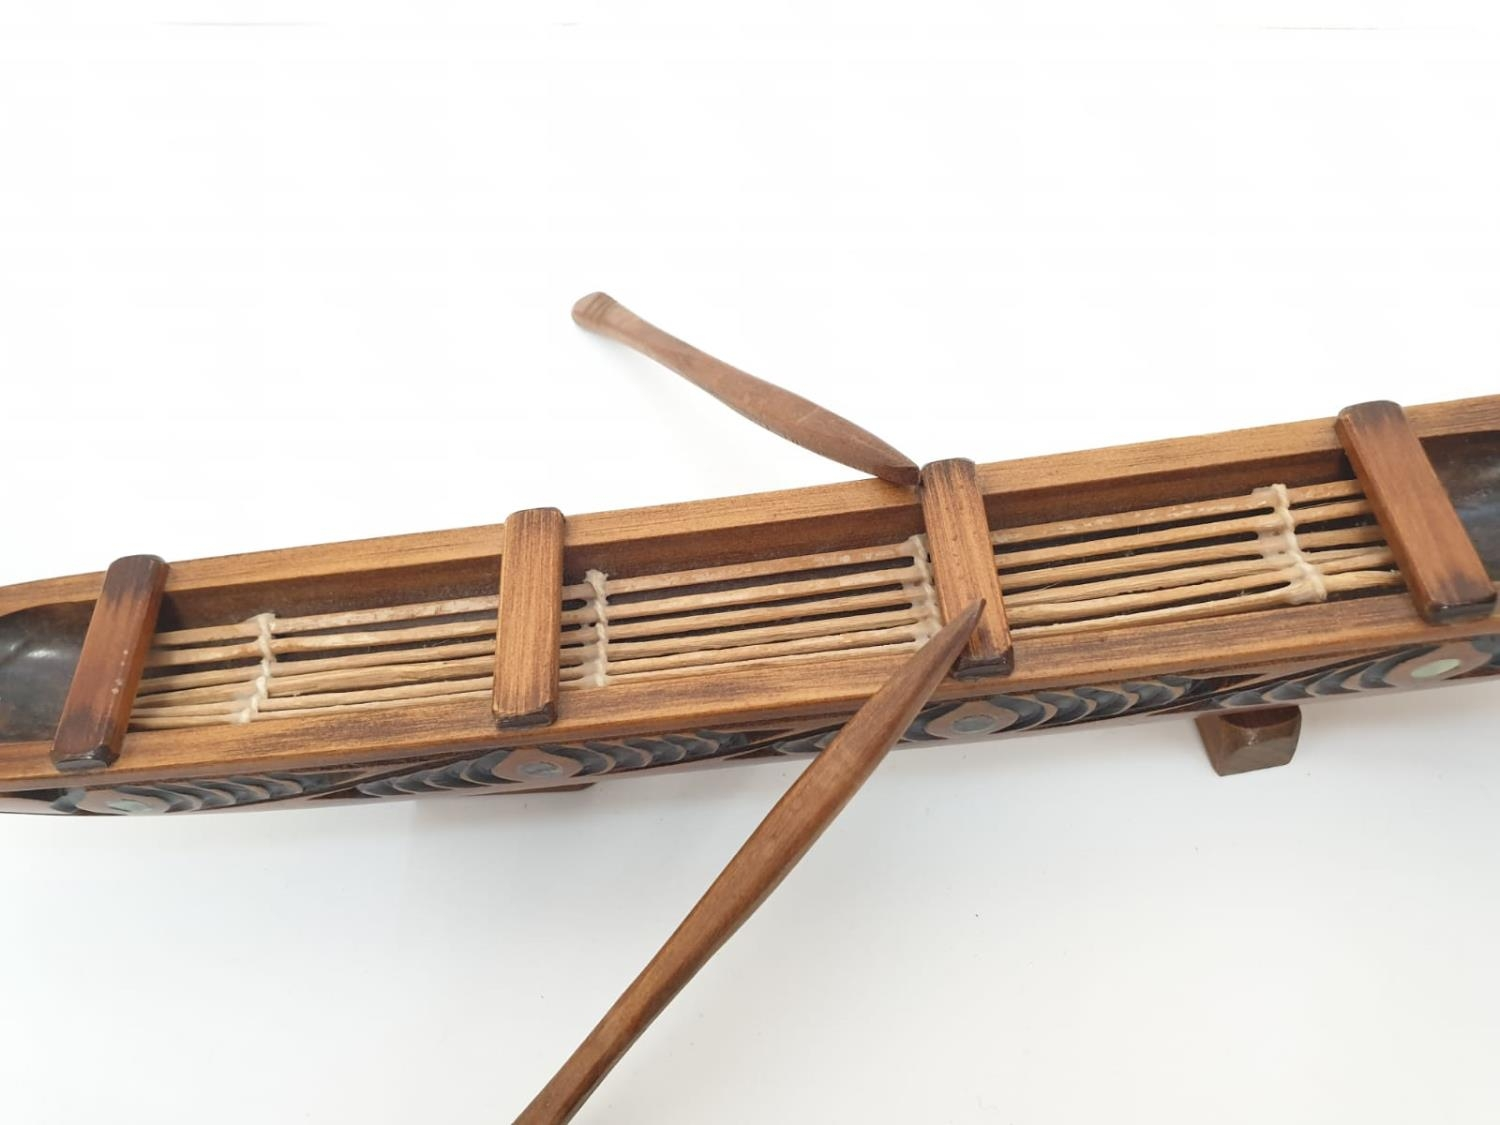 Hawaiian hand carved wooden boat, 49x20cm - Image 8 of 9